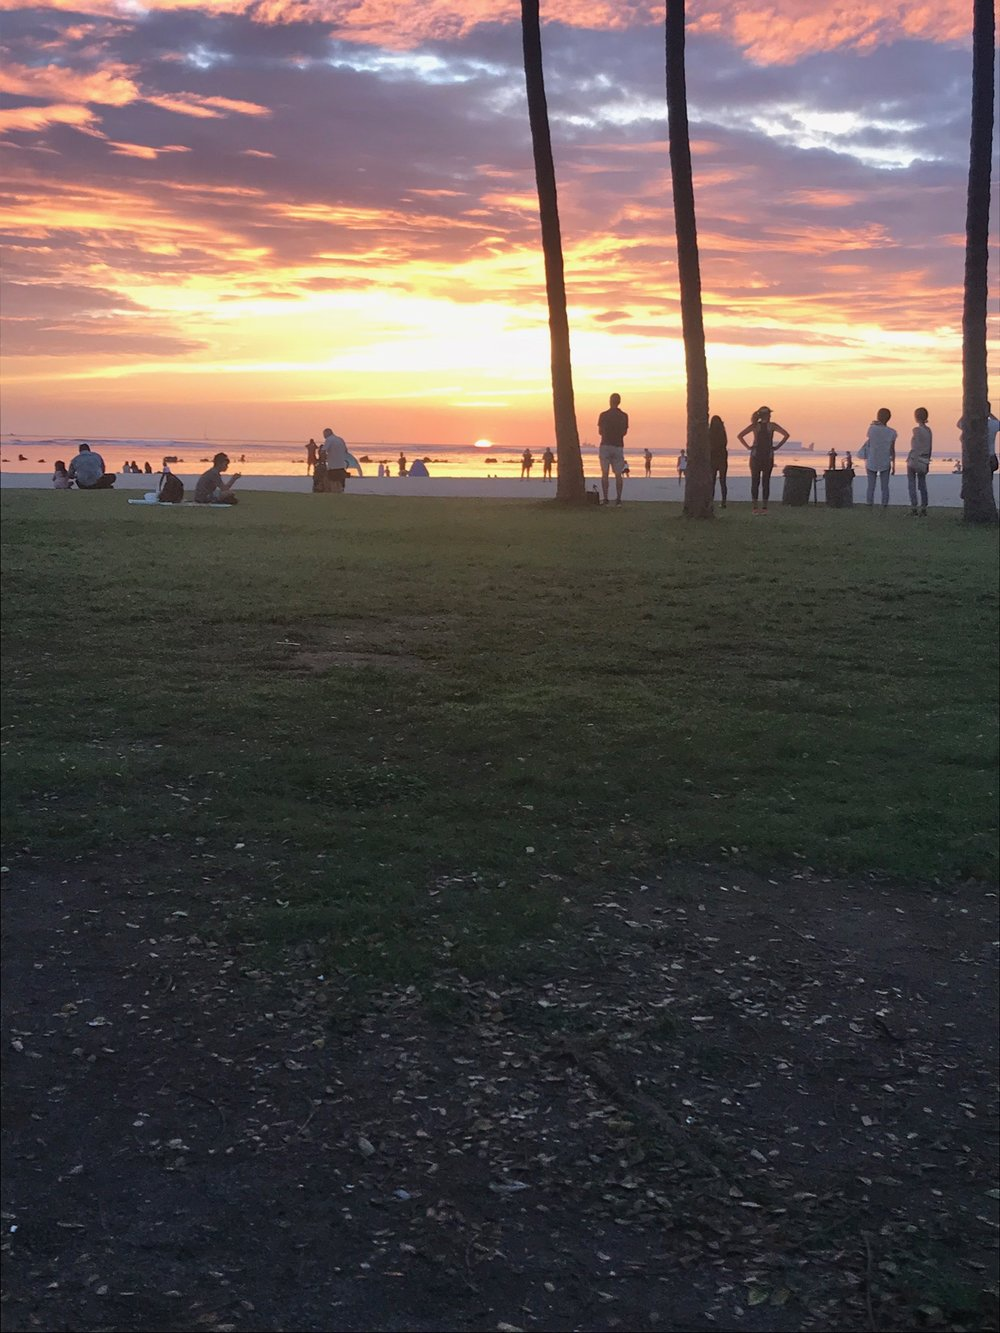 Ala Moana Beach Park, Sunset. February 2018